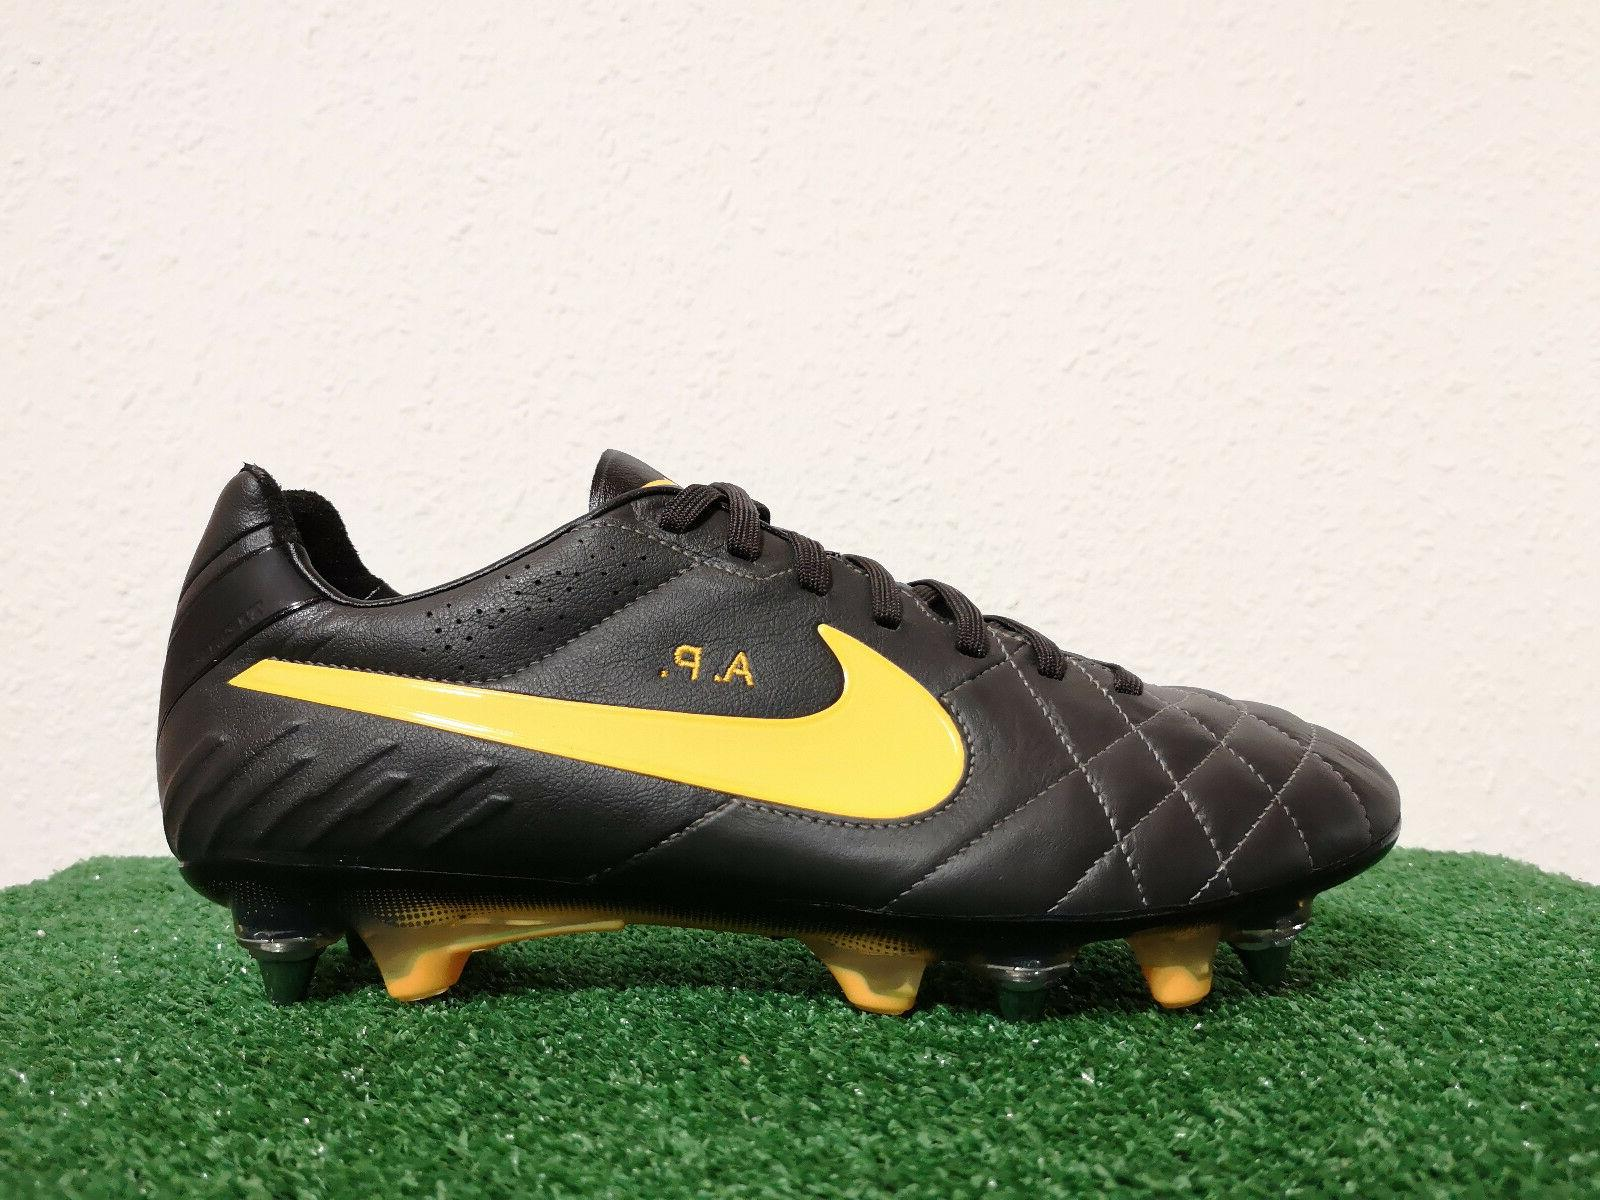 nike tiempo air iv acc sg-pro uk 7,5 us boots